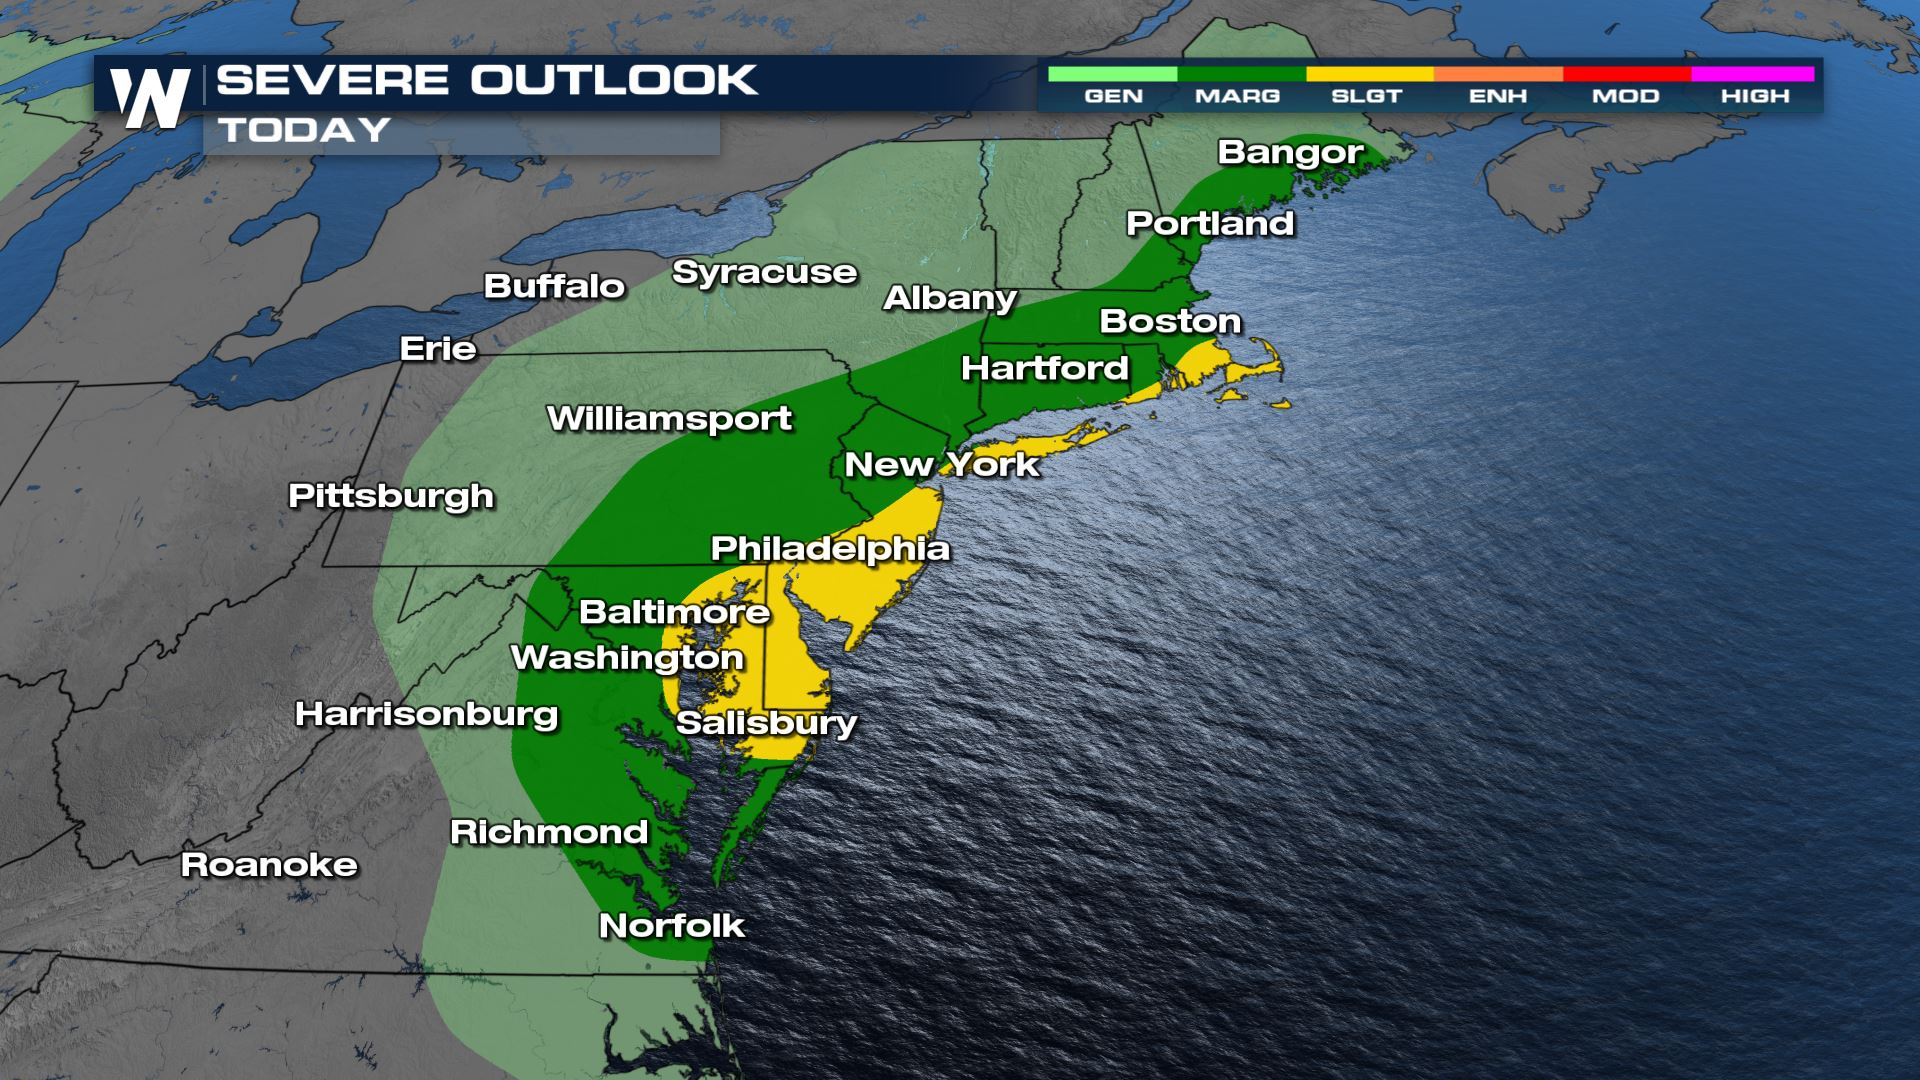 Severe Storms & Flooding Potential for the Northeast Today